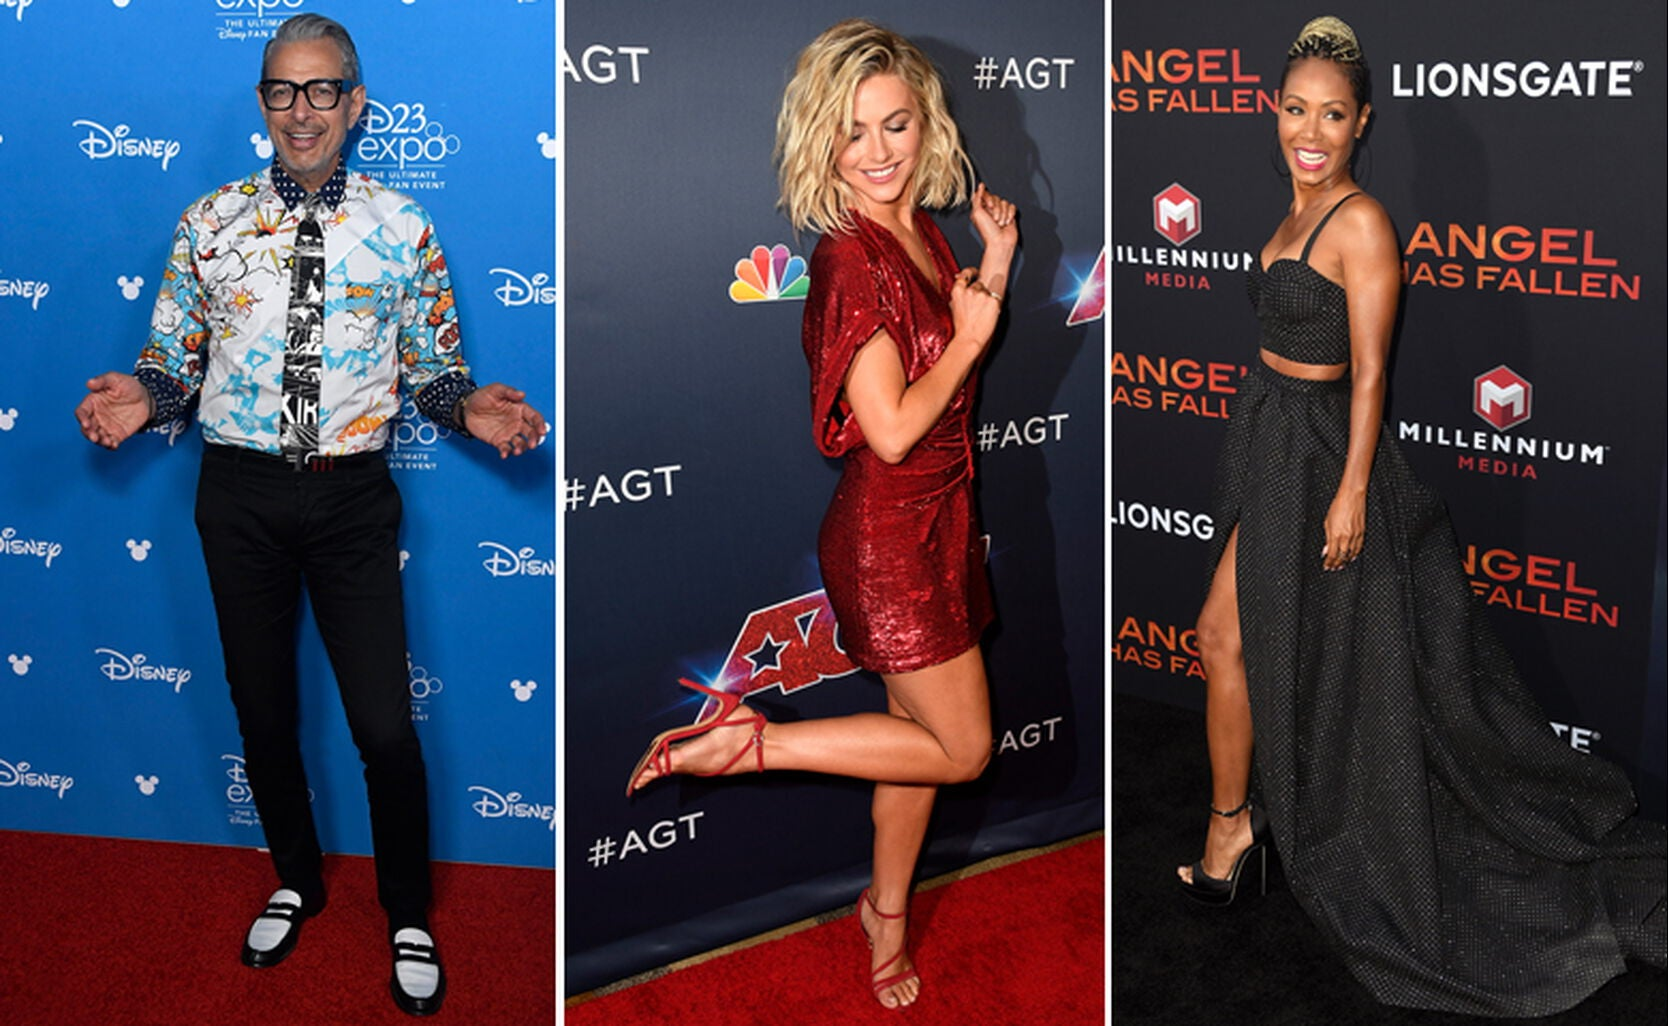 Jeff Goldblum, Julianne Hough, Jada Pinkett Smith